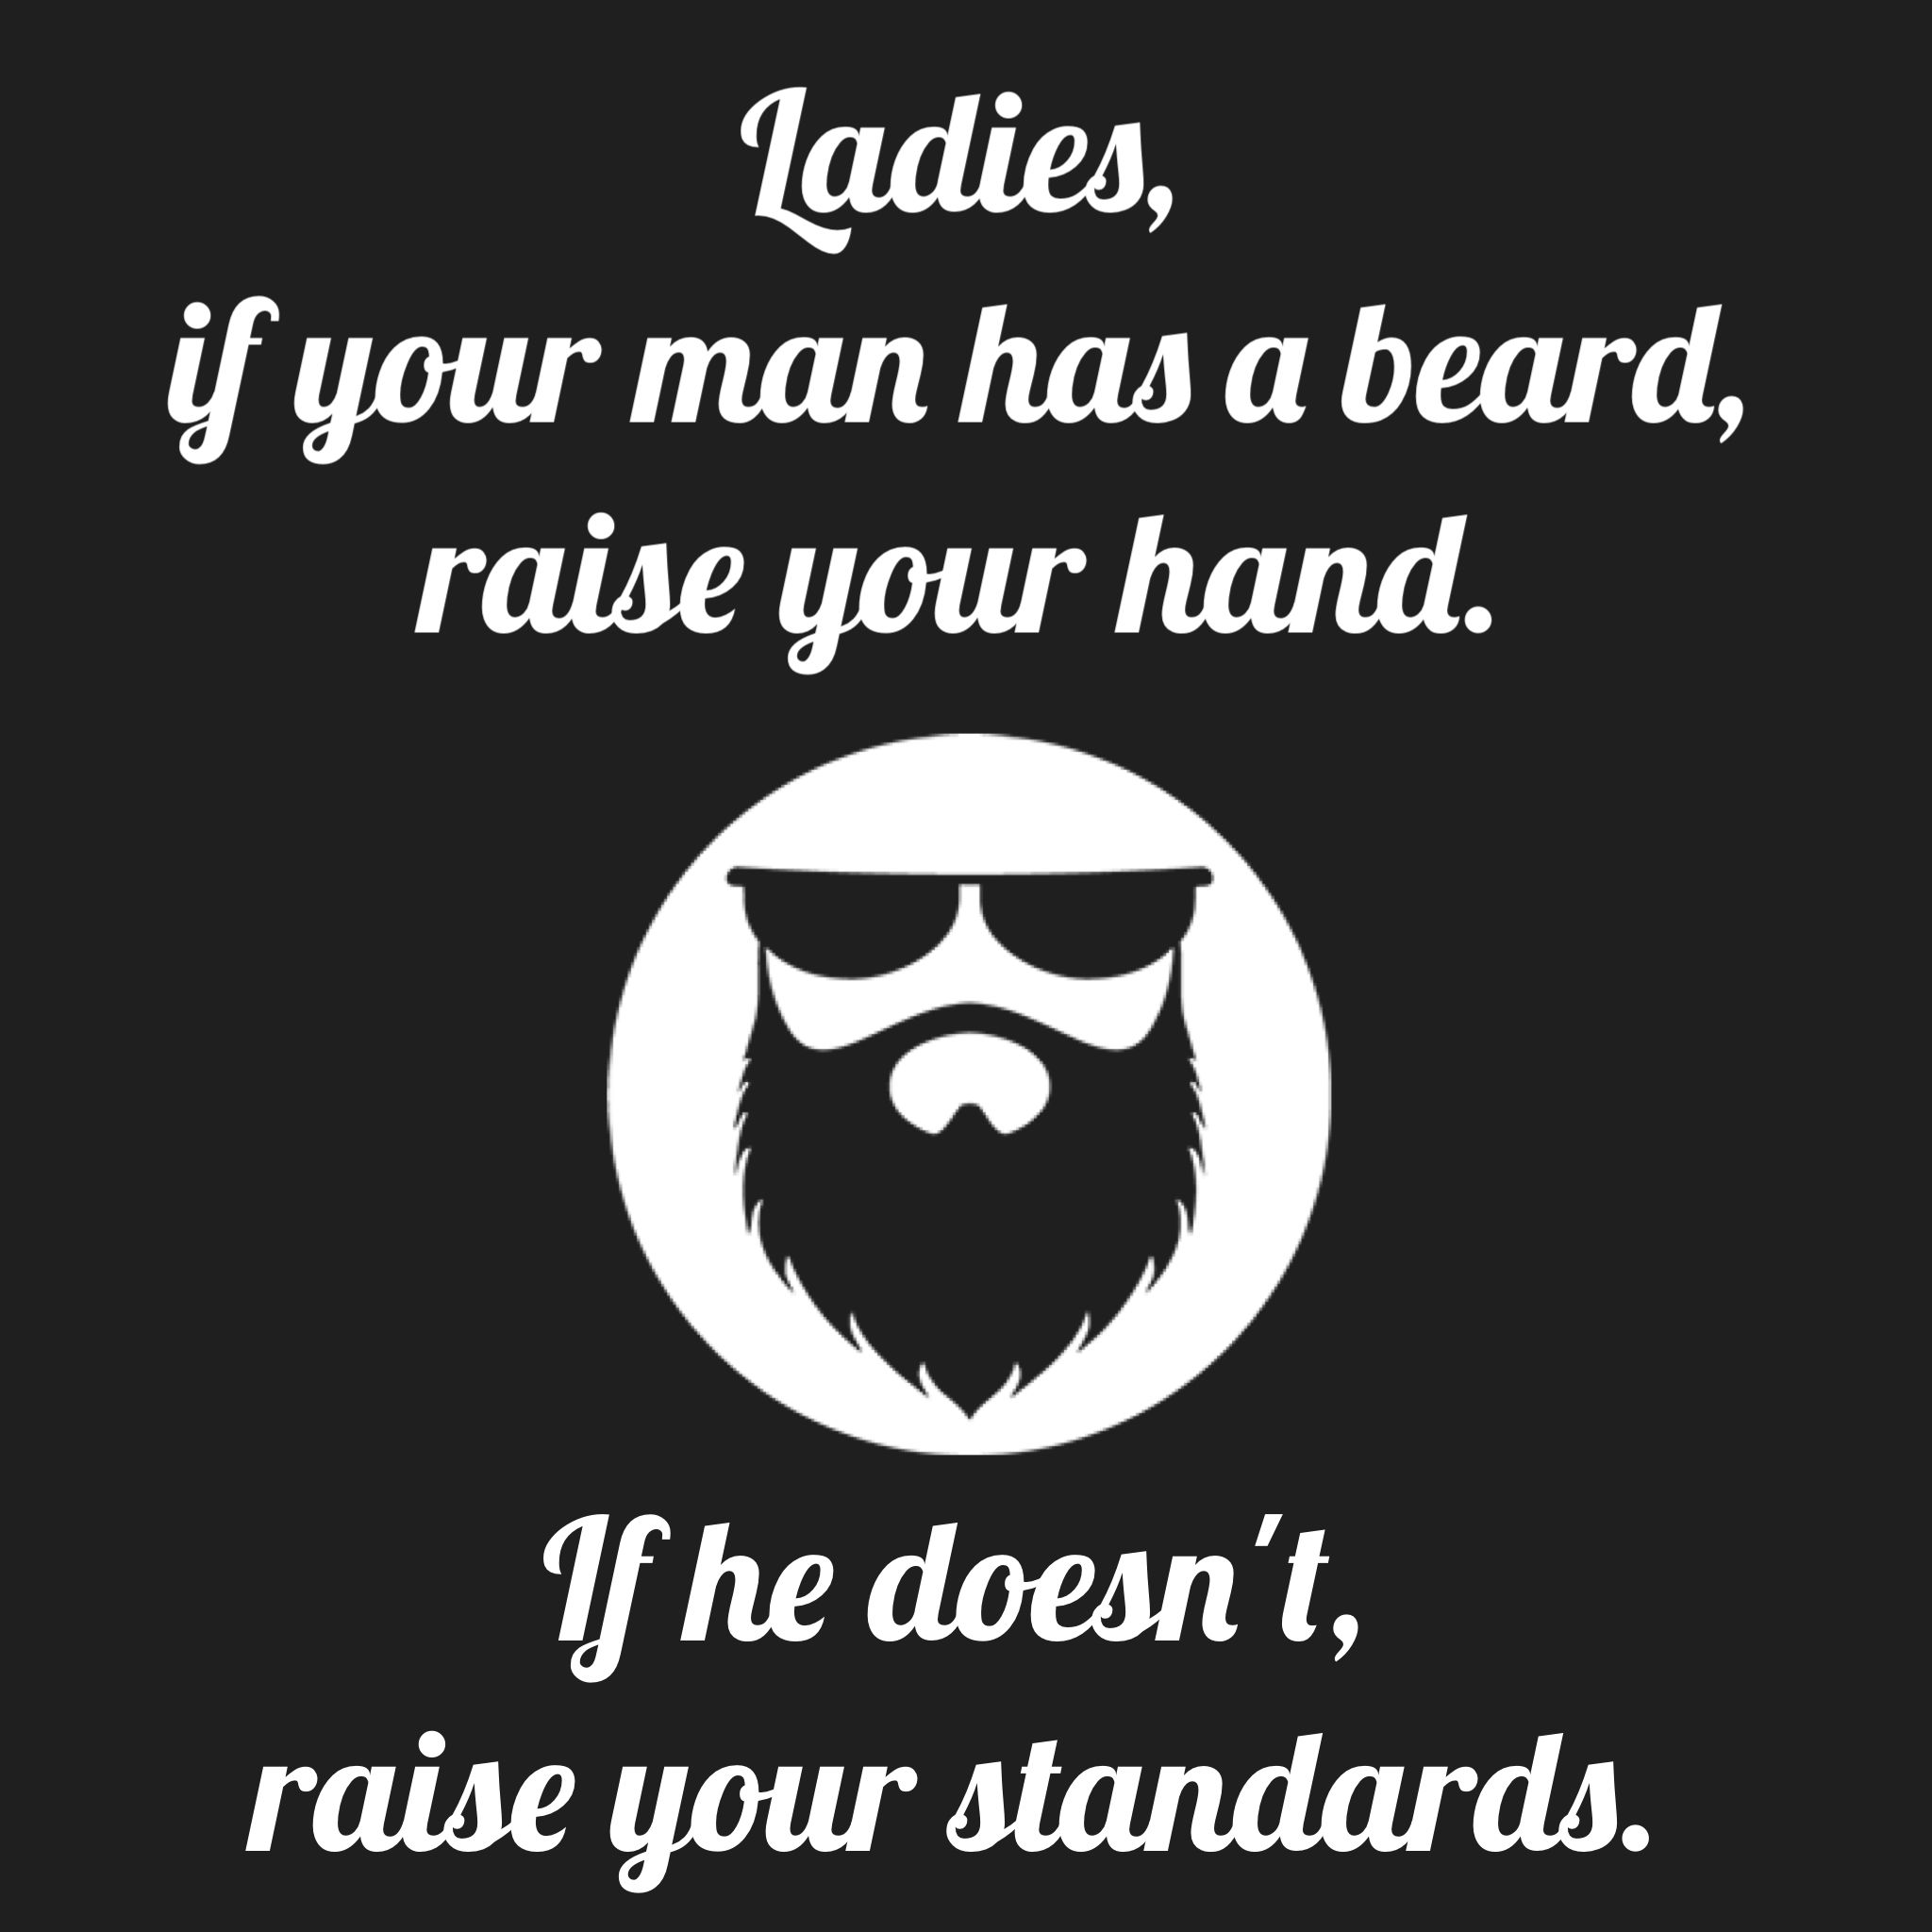 Raise Your Hand Beard Quotes Beard Memes Beard No Mustache